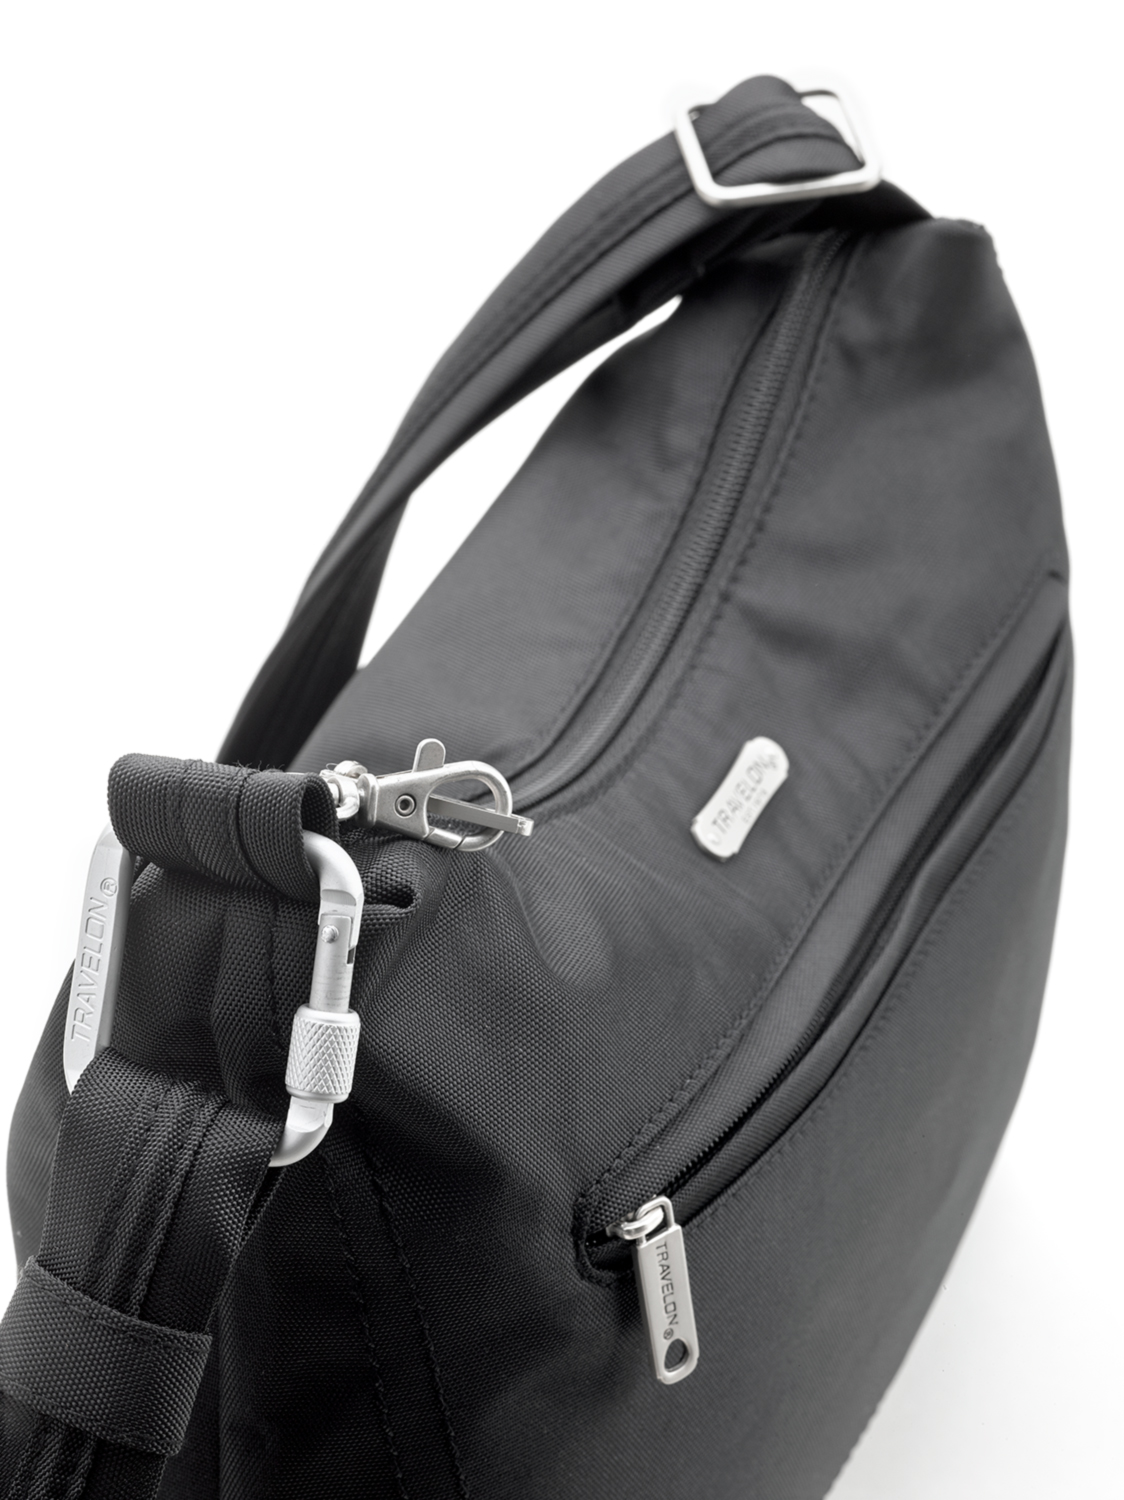 713c33debc9 Travelon – Anti-Theft Classic Hobo Shoulder Bag RFID Protected – Black